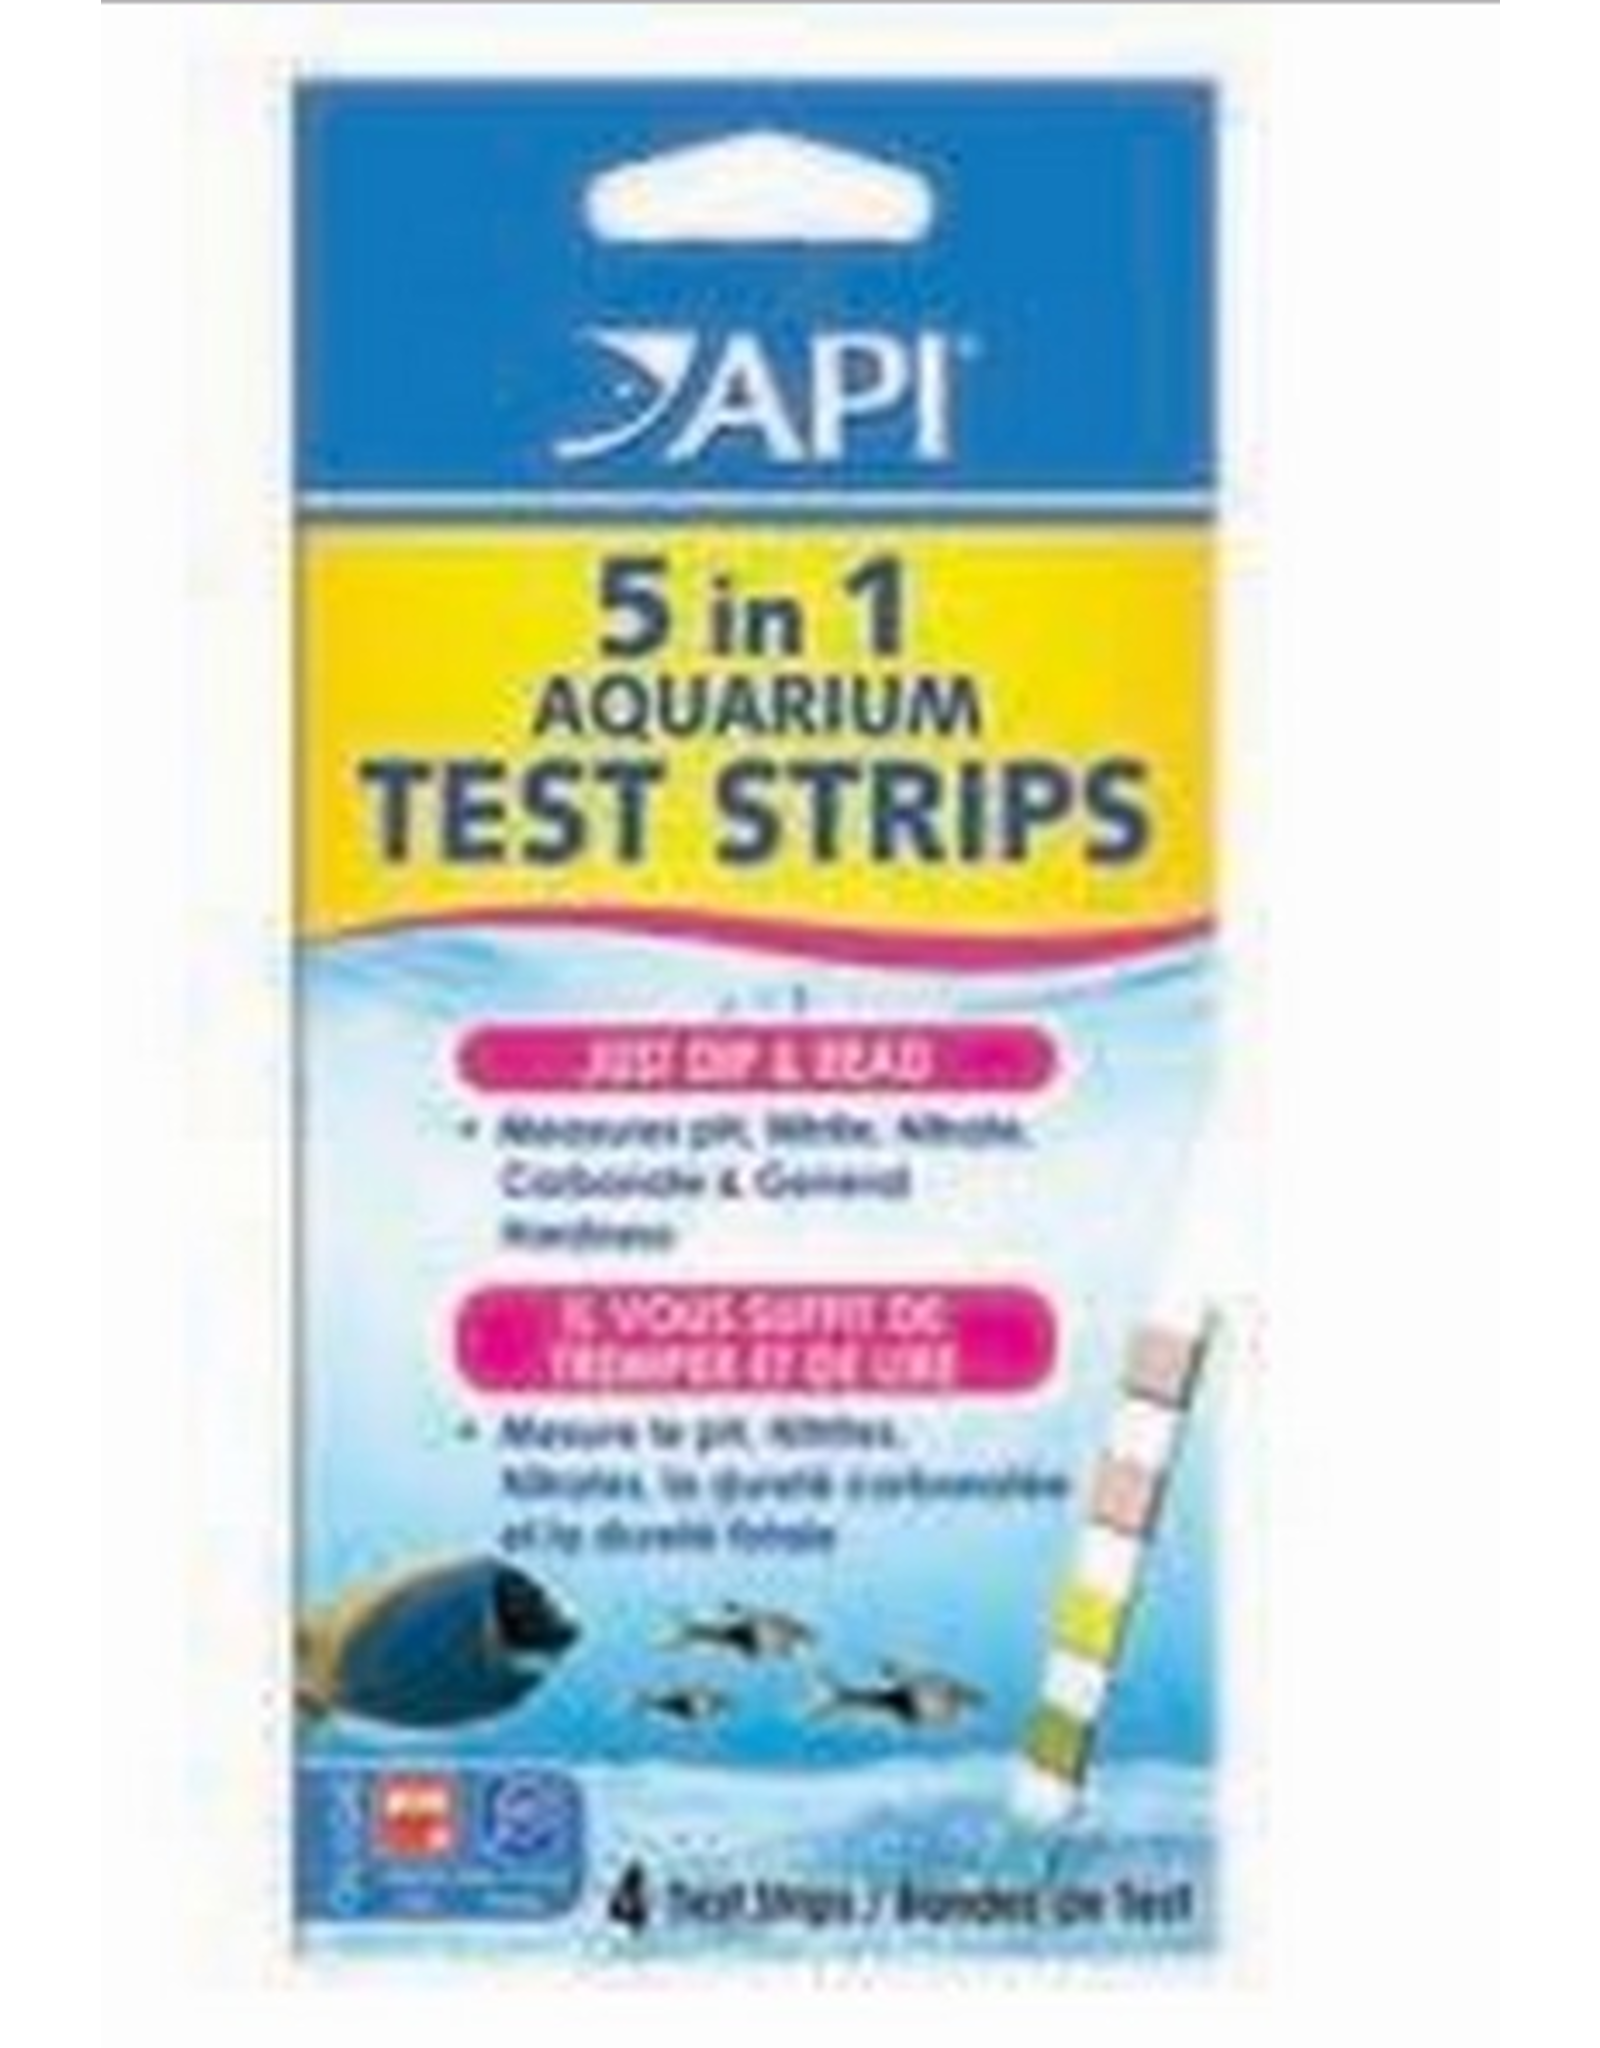 API API 5 in 1 Aquarium Test Strips (4pack)